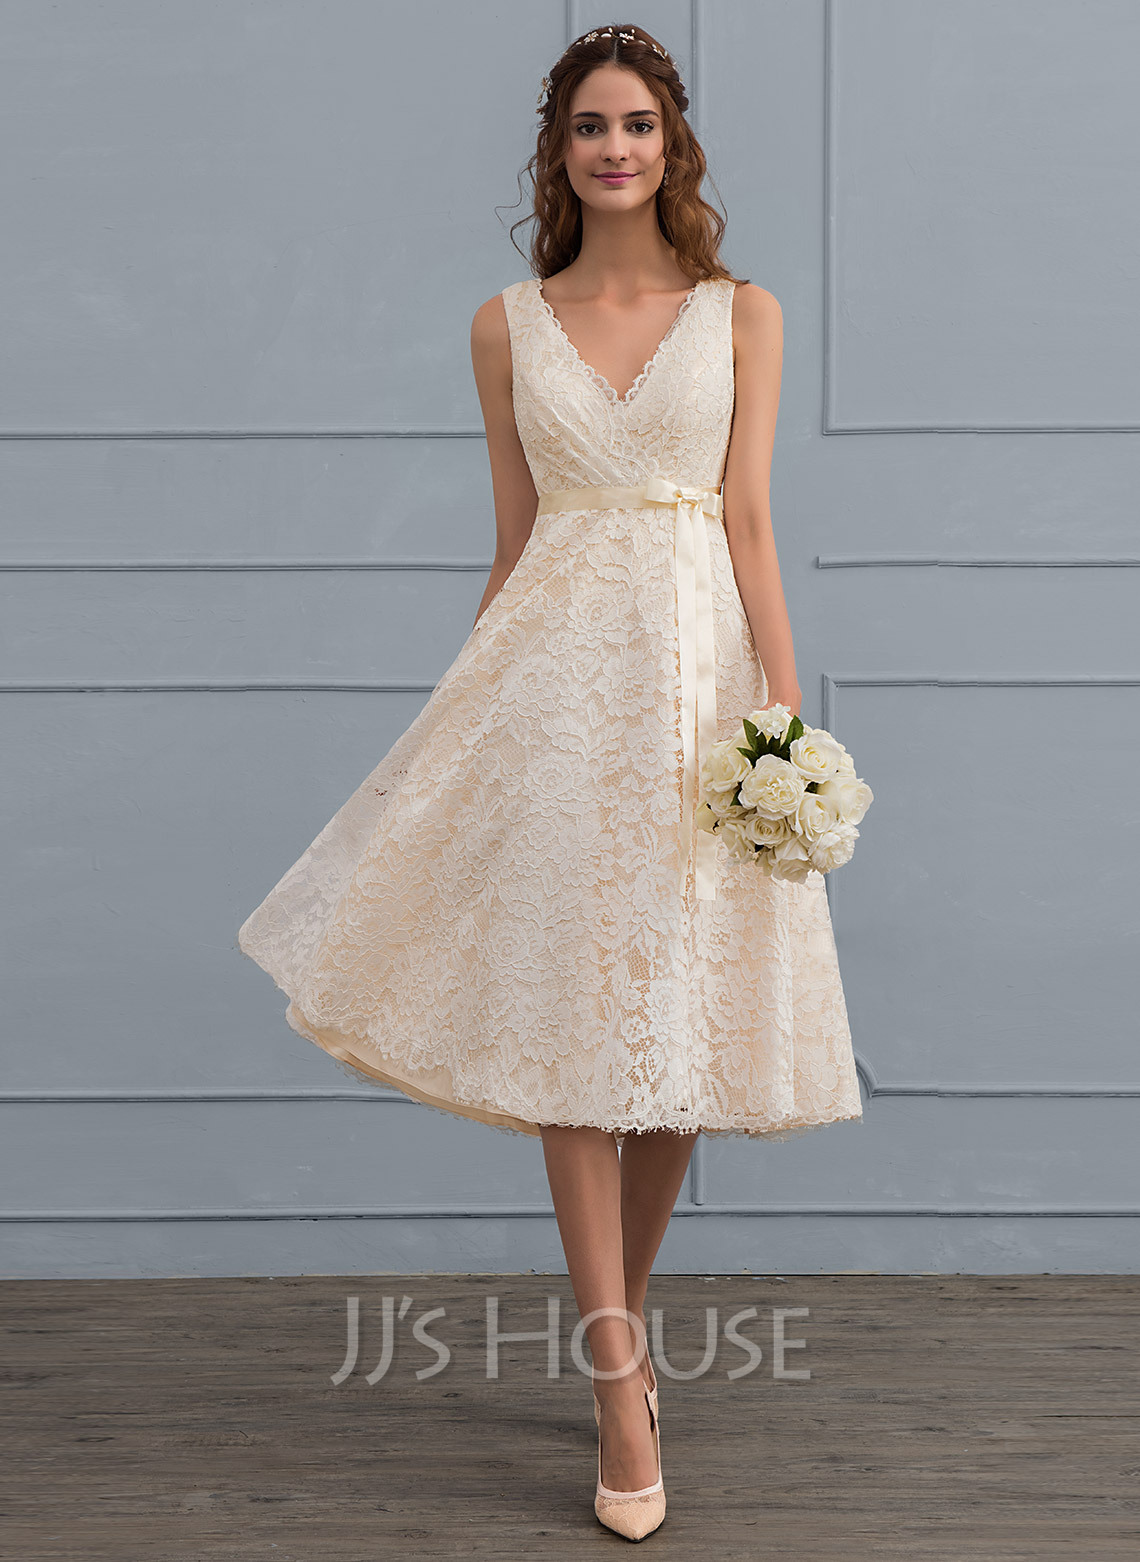 Beautiful wedding reception dresses jjshouse a lineprincess v neck knee length lace wedding dress with bow junglespirit Images